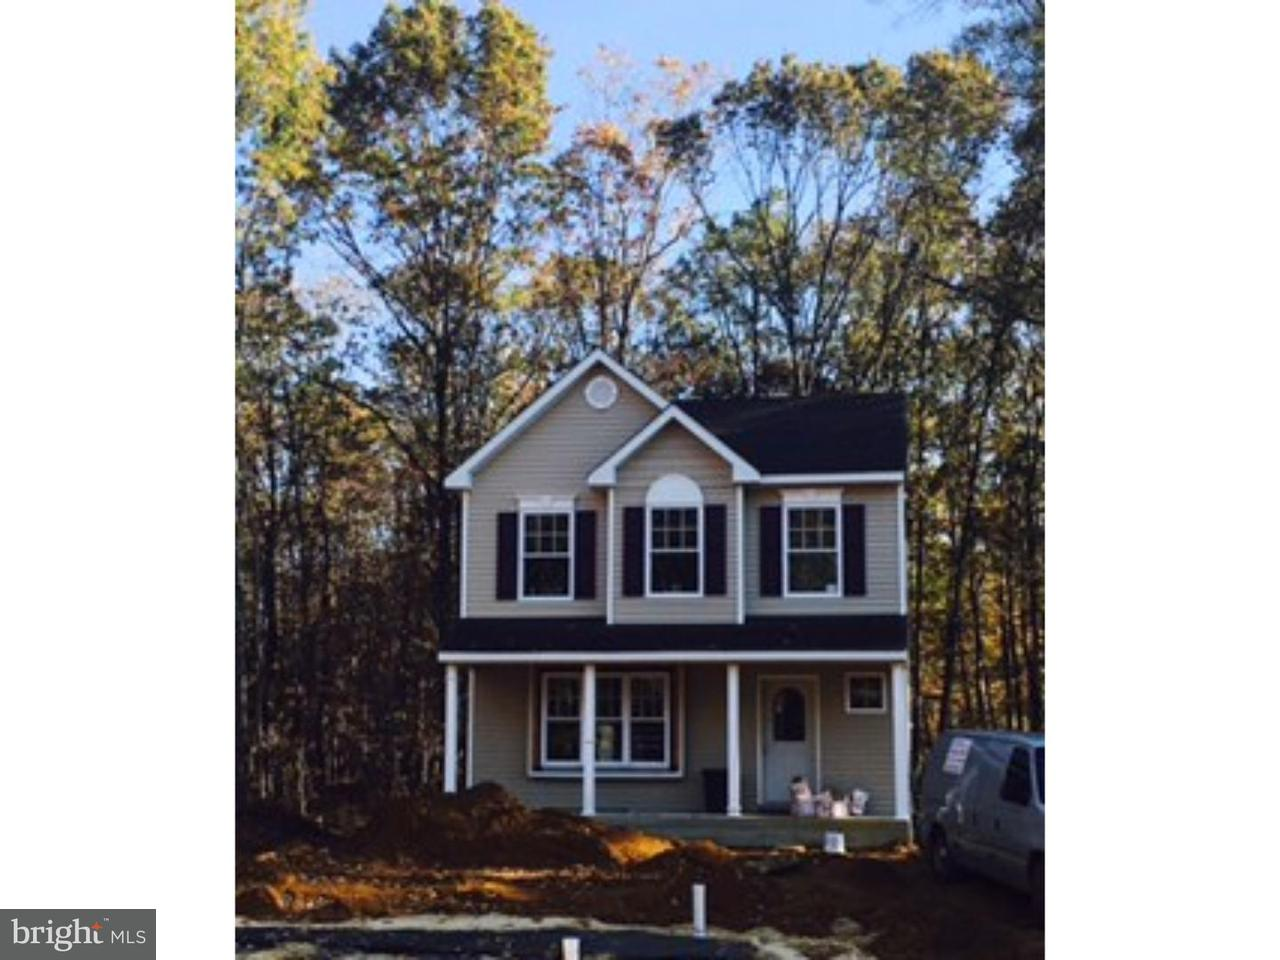 Single Family Home for Sale at 141 DOUGLAS Avenue Elk Township, New Jersey 08028 United States